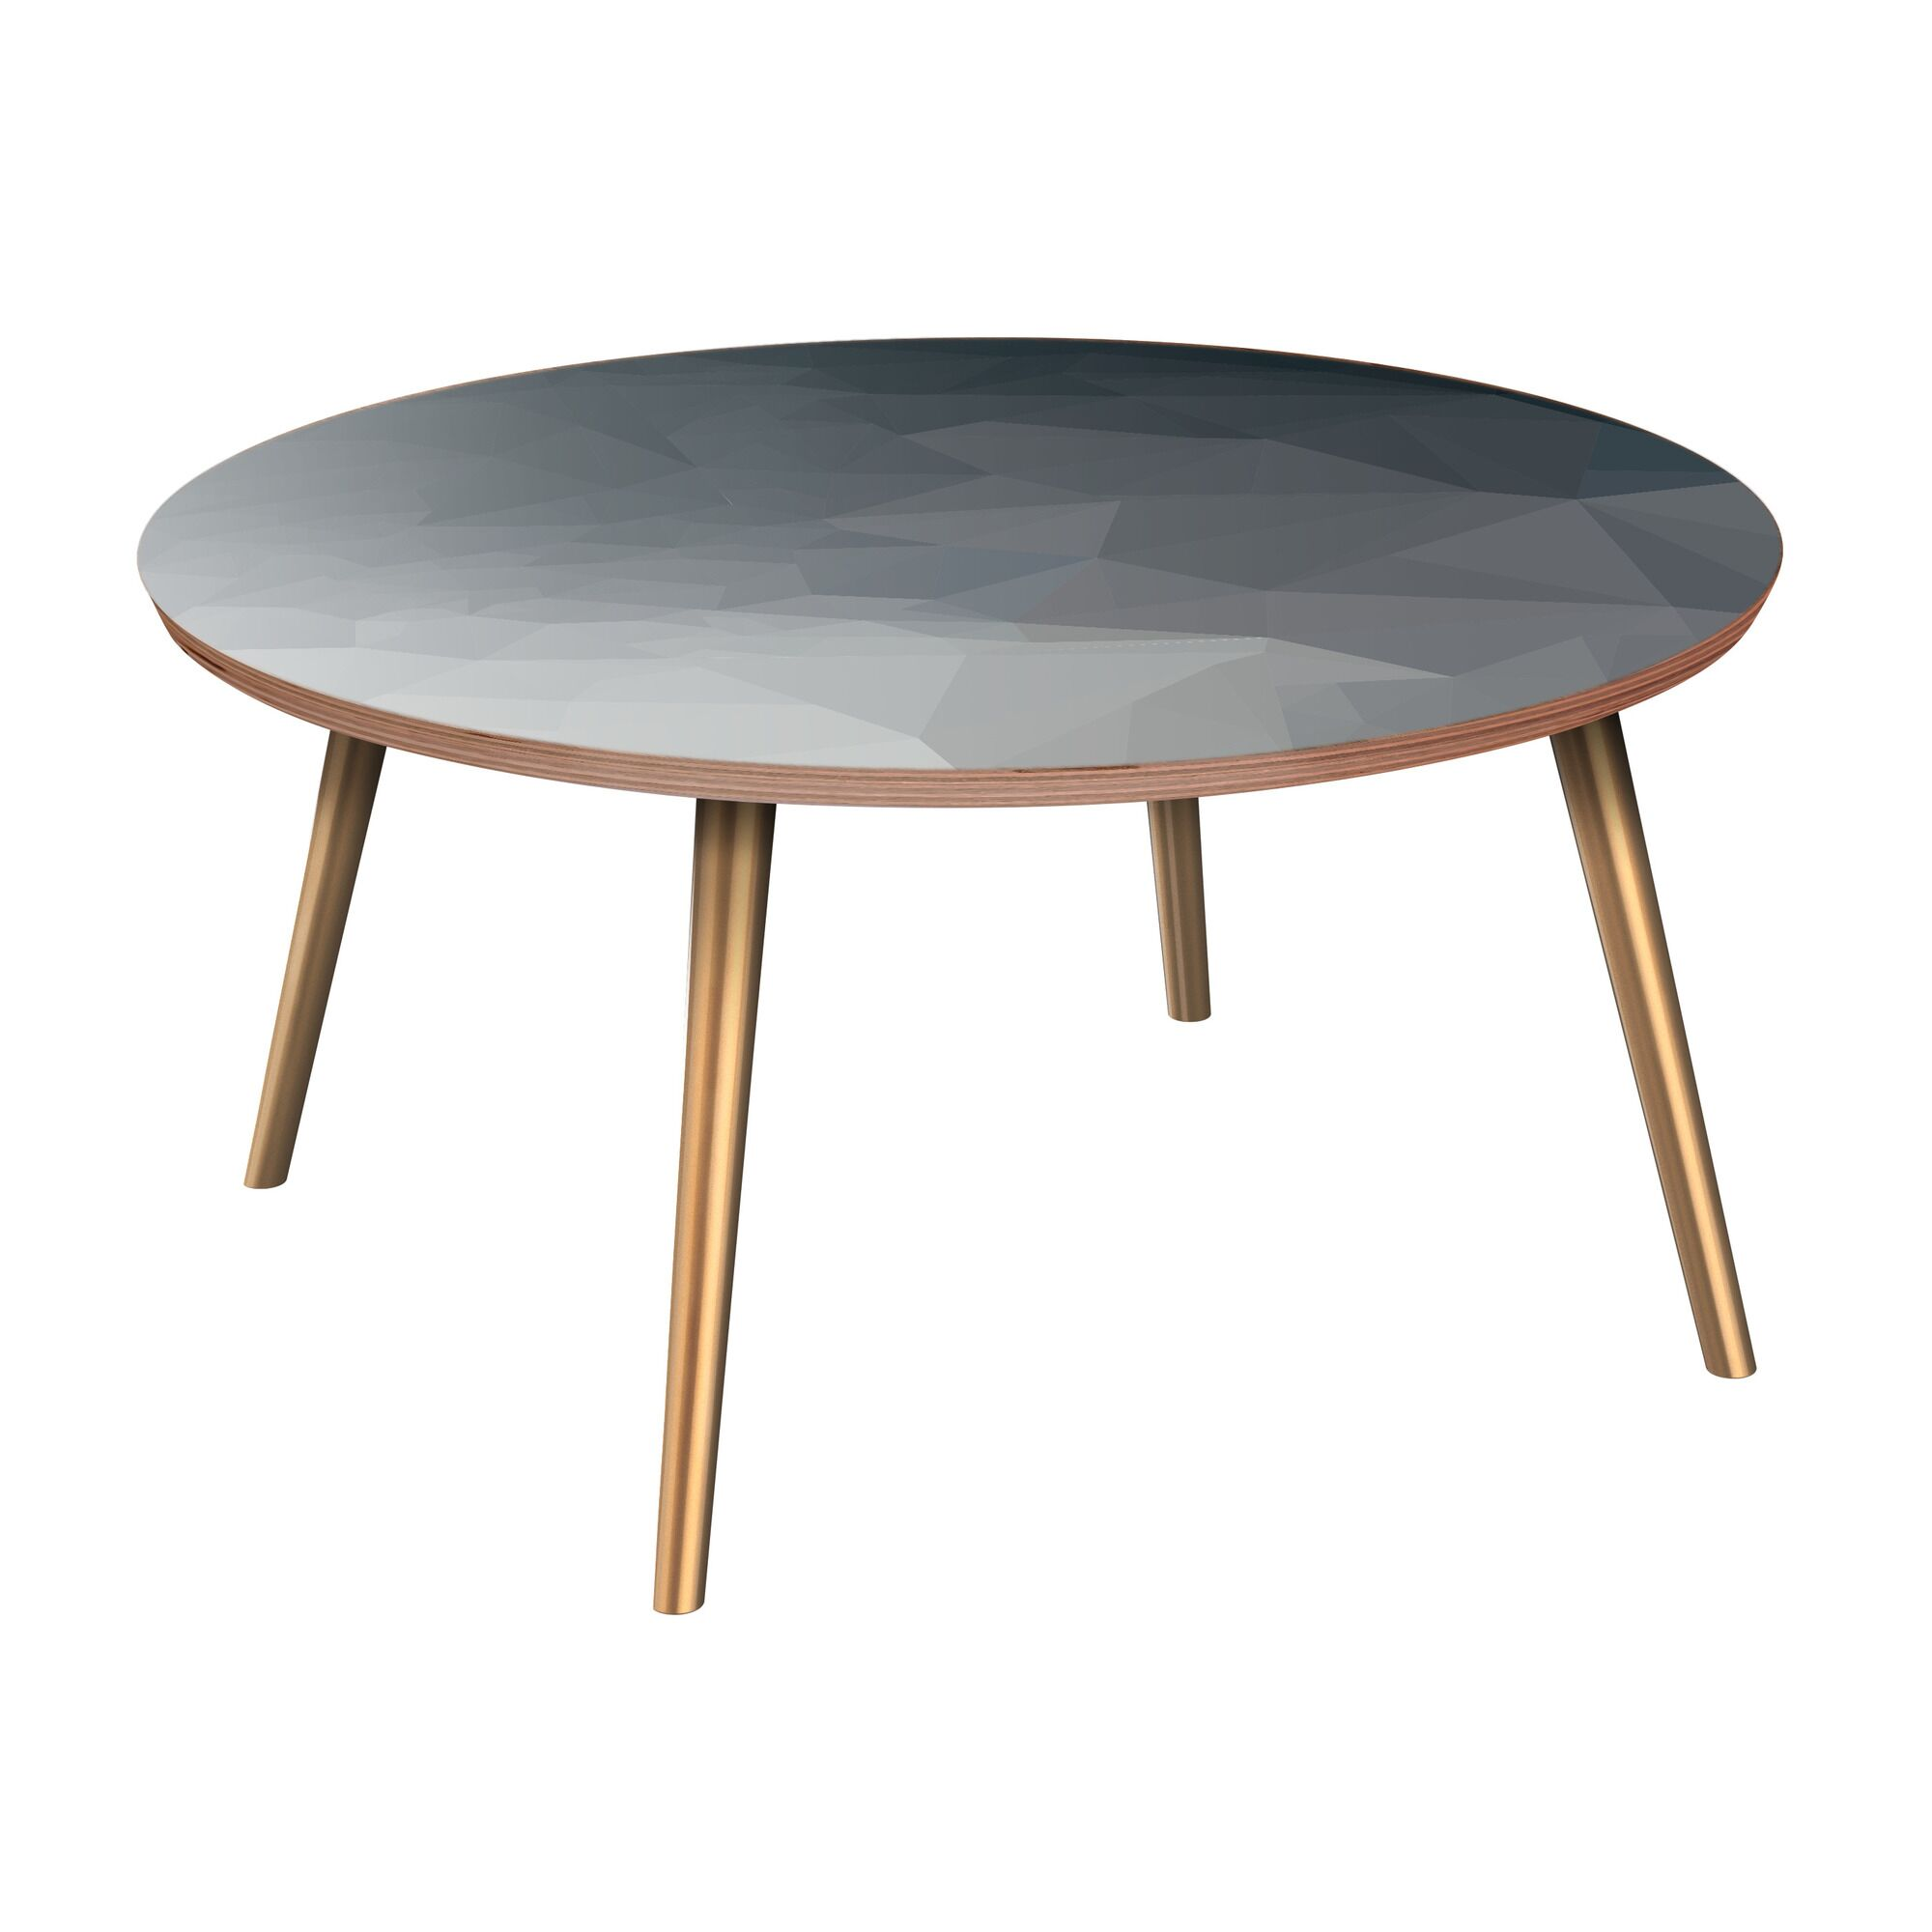 Janae Coffee Table Table Base Color: Brass, Table Top Boarder Color: Walnut, Table Top Color: Blue